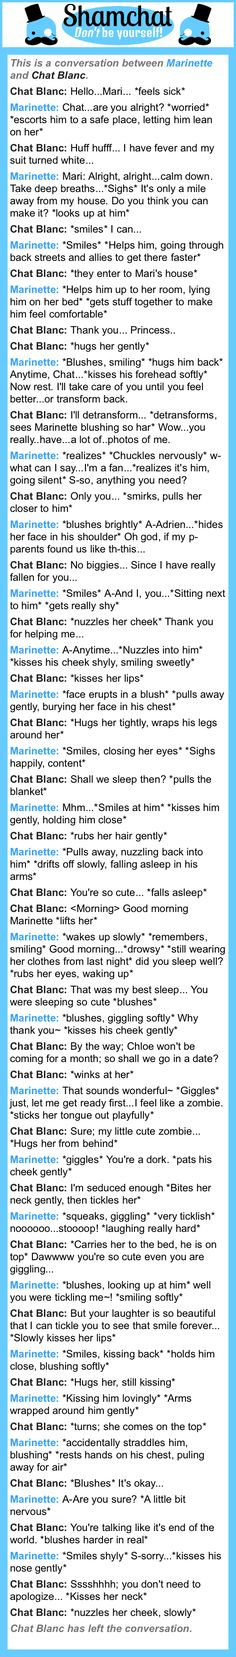 A conversation between Chat Blanc and Marinette